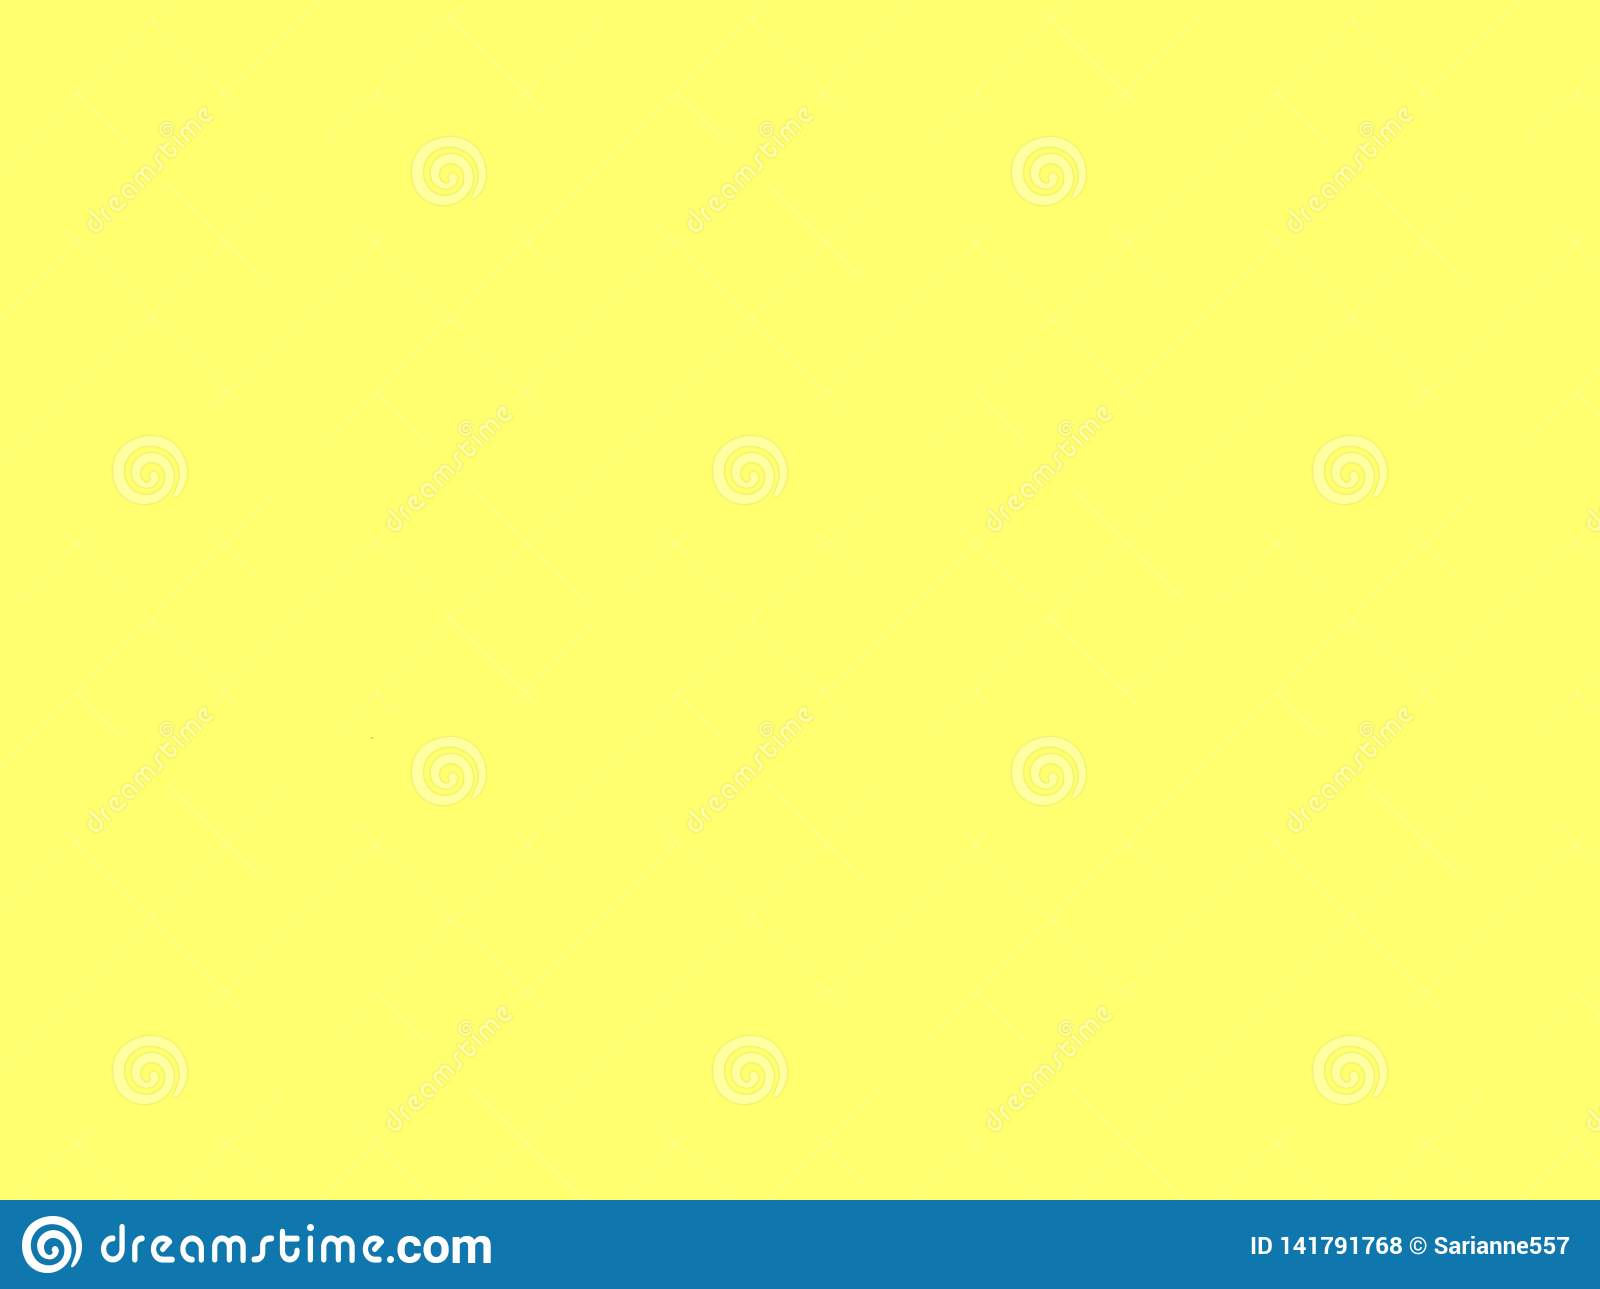 yellow plain background backdrops copy space empty wallpaper smooth colour backgrounds yellow plain background 141791768